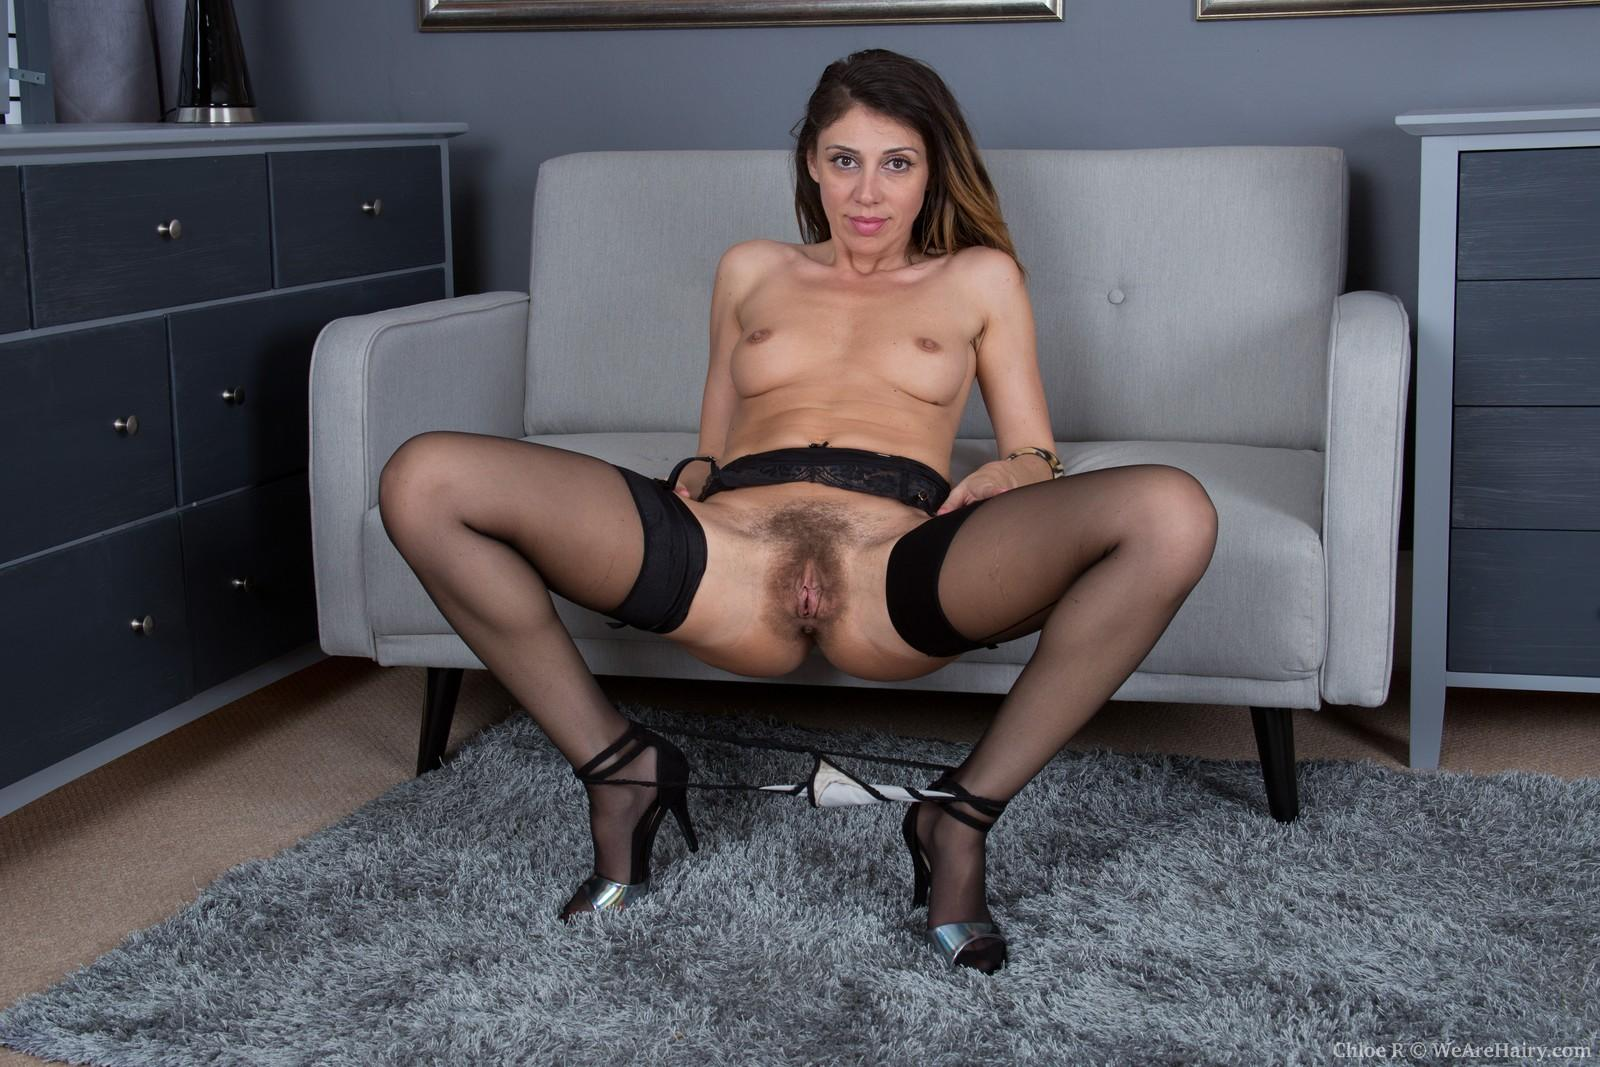 Gawky dark-haired amateur Chloe R spreading furry cooch after pantyhose removal